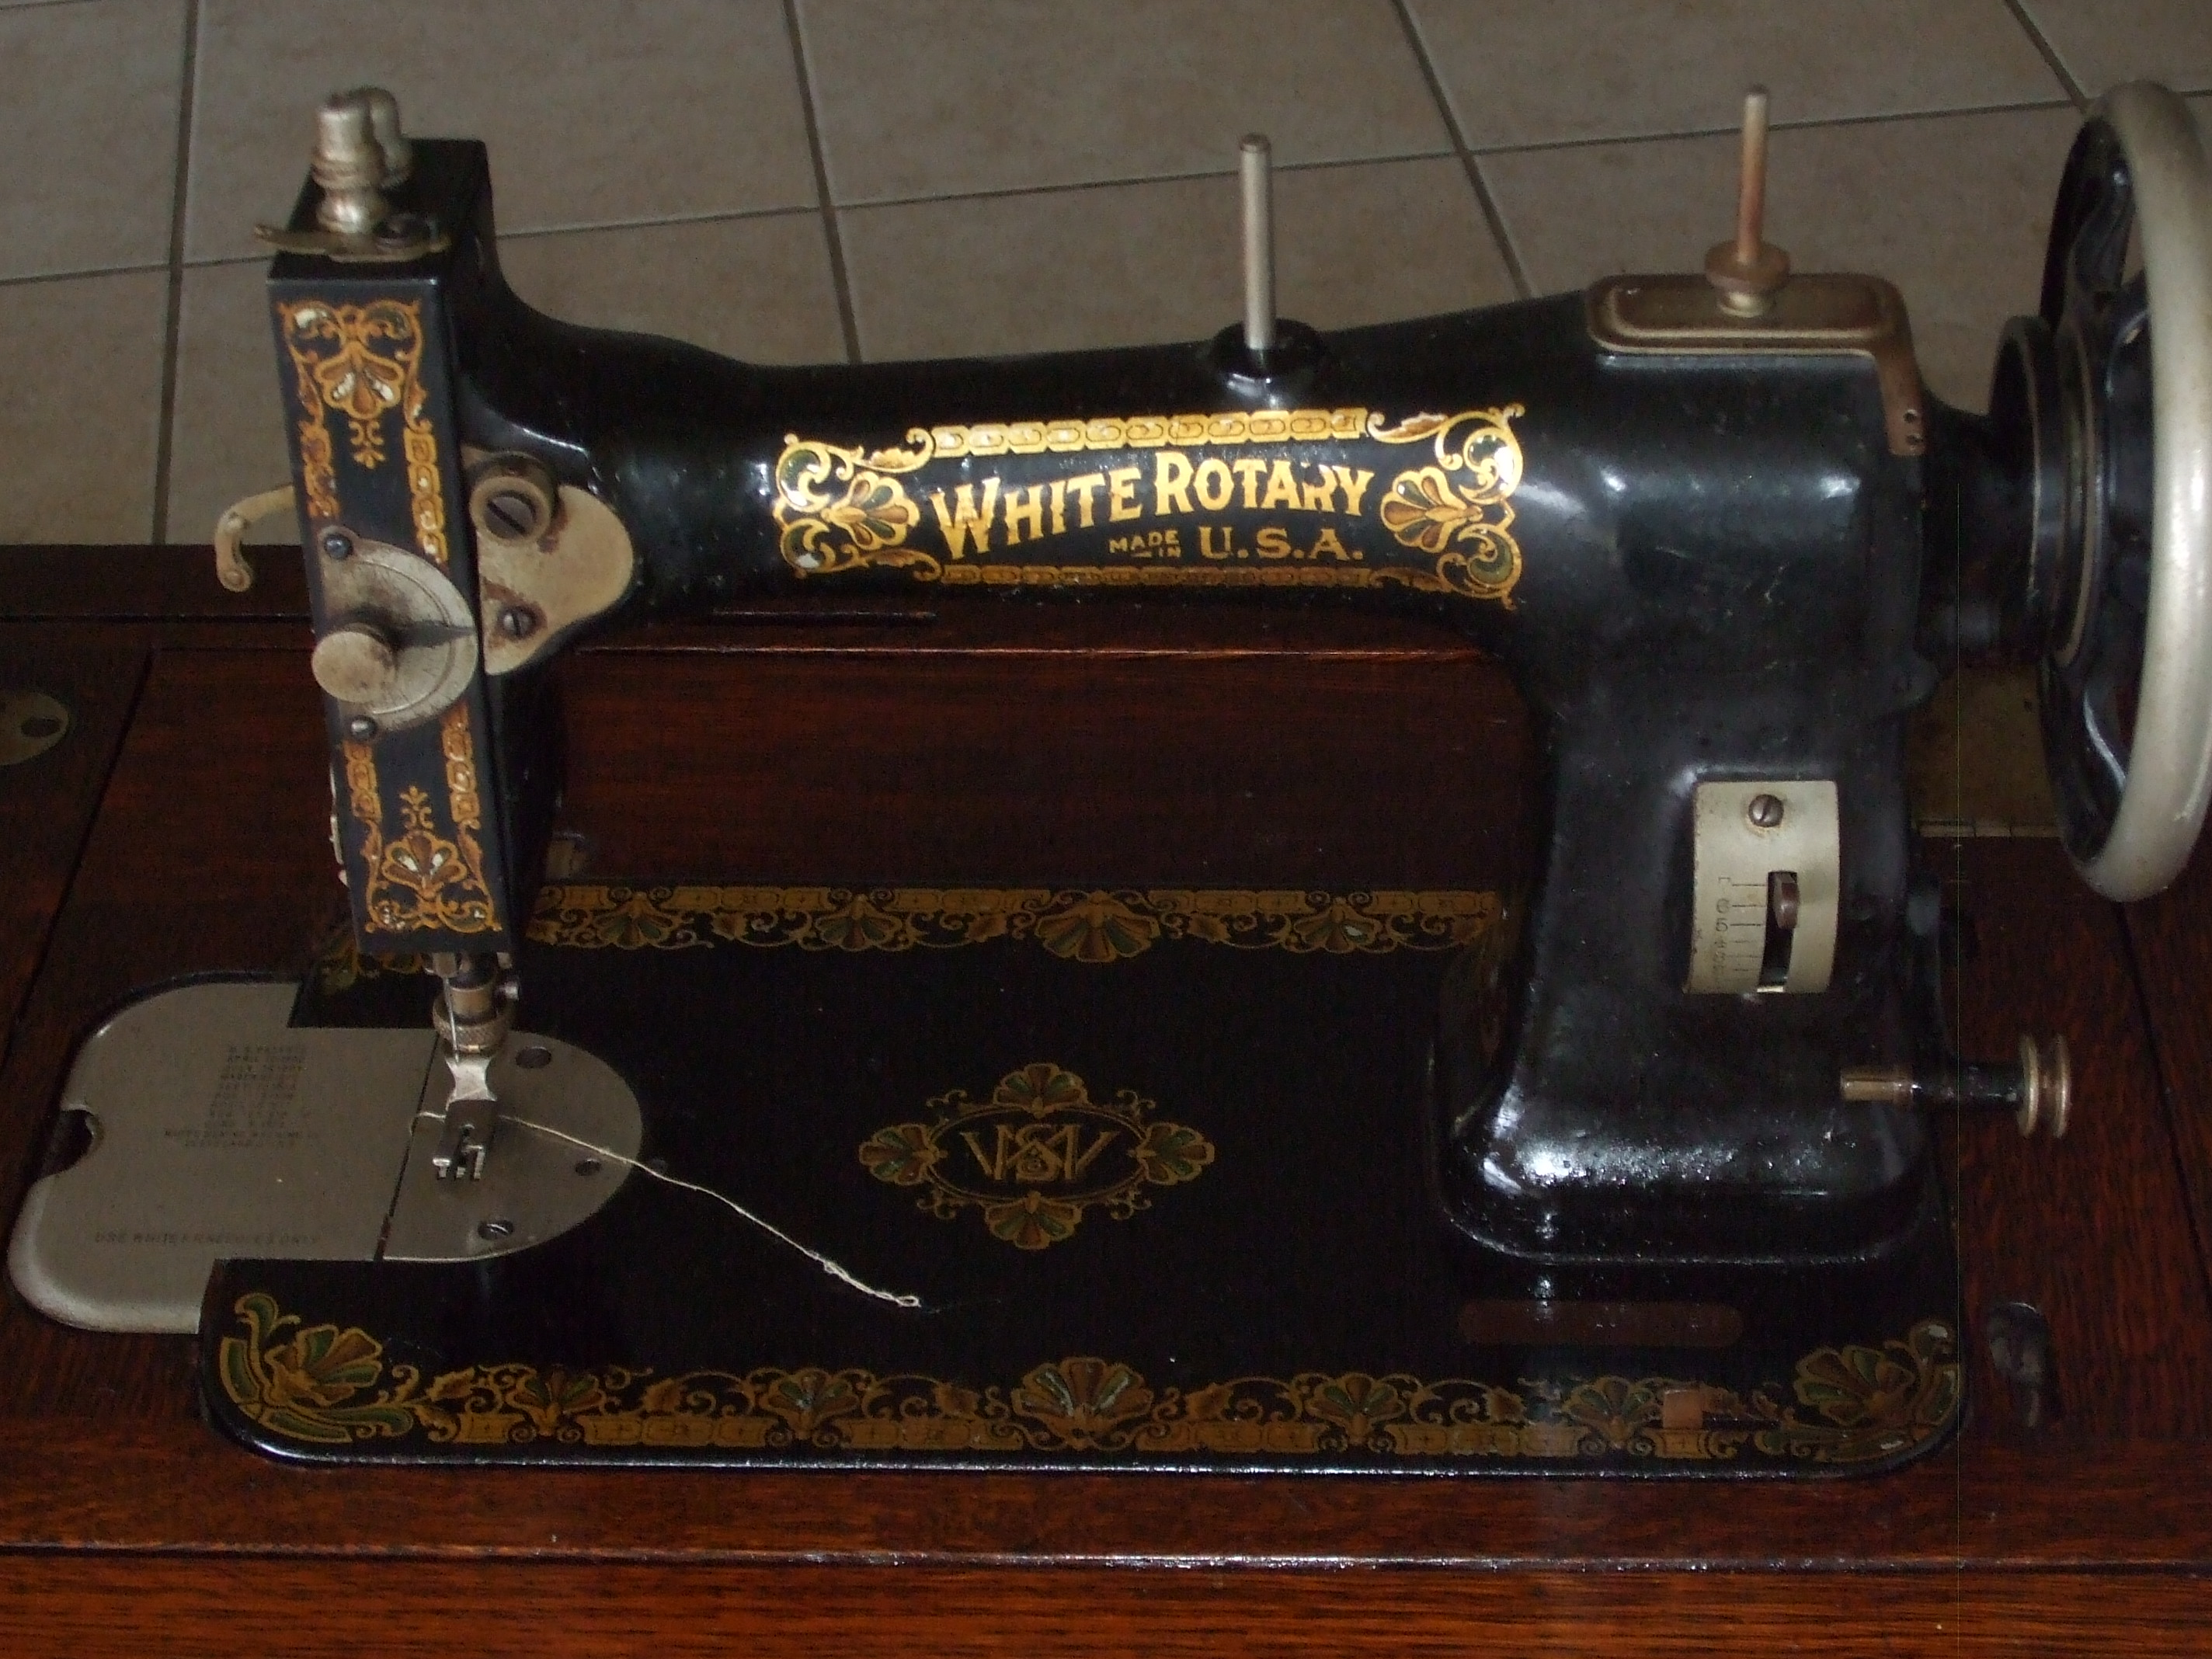 dating white rotary sewing machines Explore sue lester's board white rotary treadle sewing machine on pinterest 1911 white rotary sewing machine dating an old sewing machine.